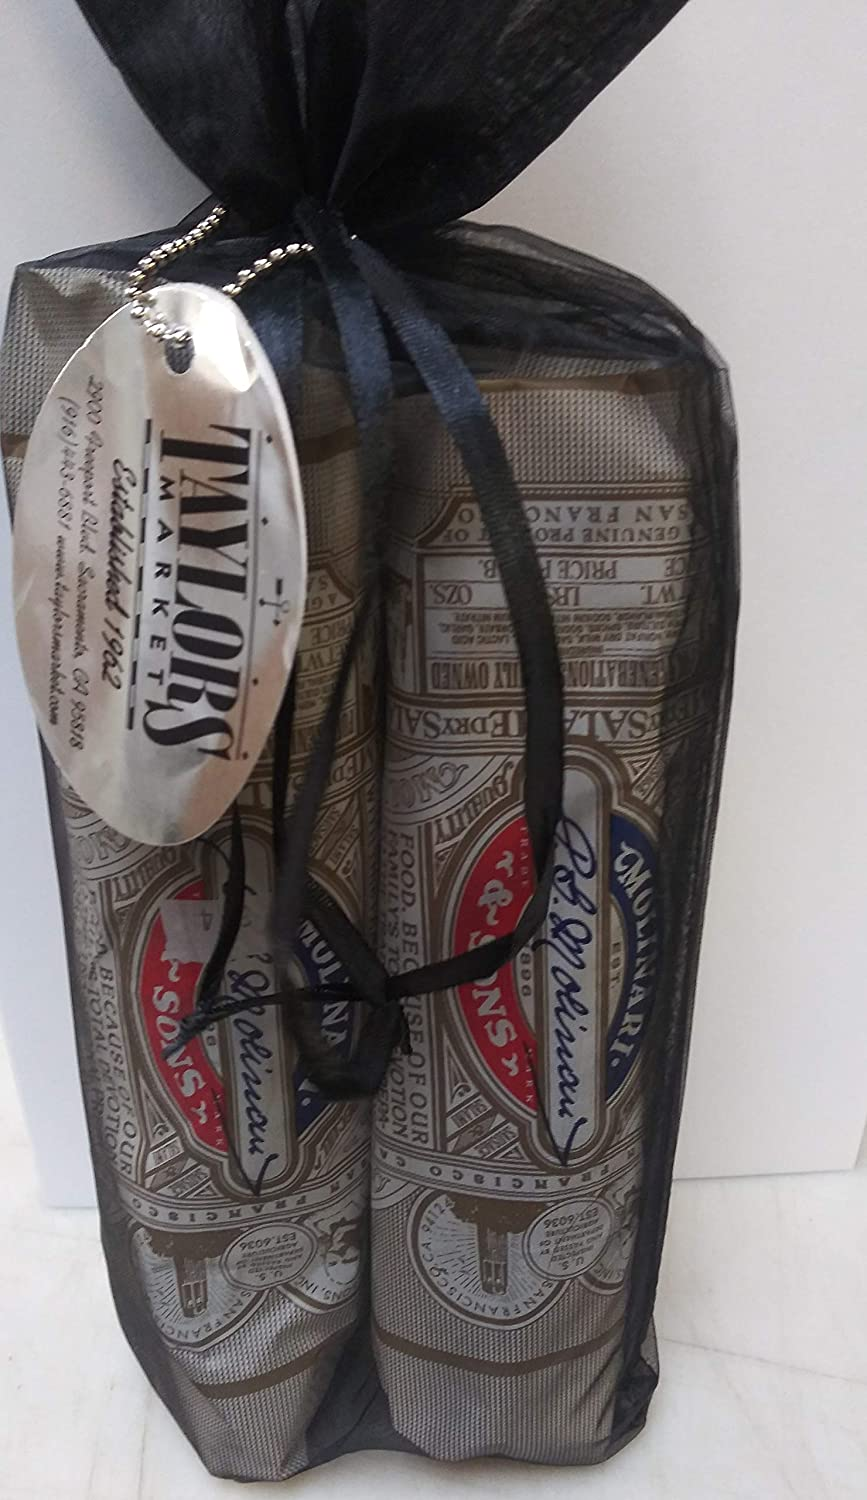 Recommended Taylors Market 2 Pack New Orleans Mall Molinari Salami Dry 12o Italian Gift